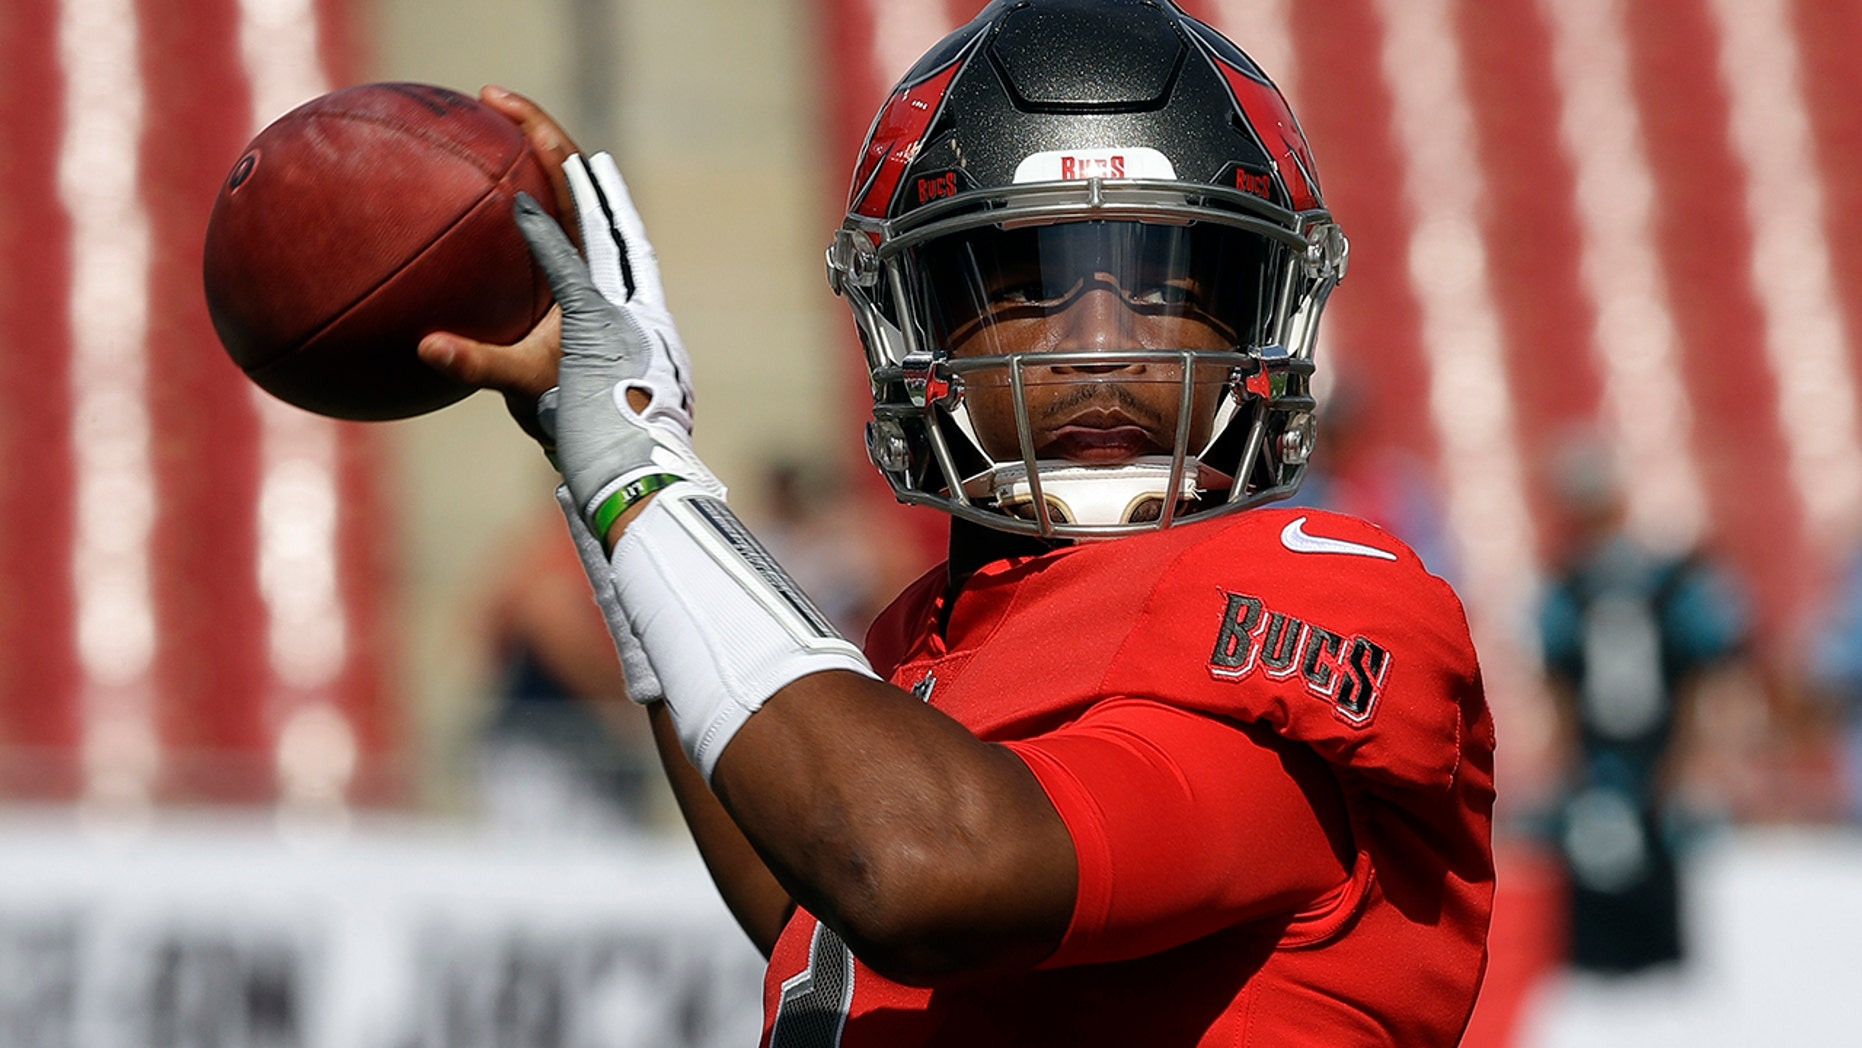 Tampa Bay Buccaneers QB Jameis Winston gets into heated argument